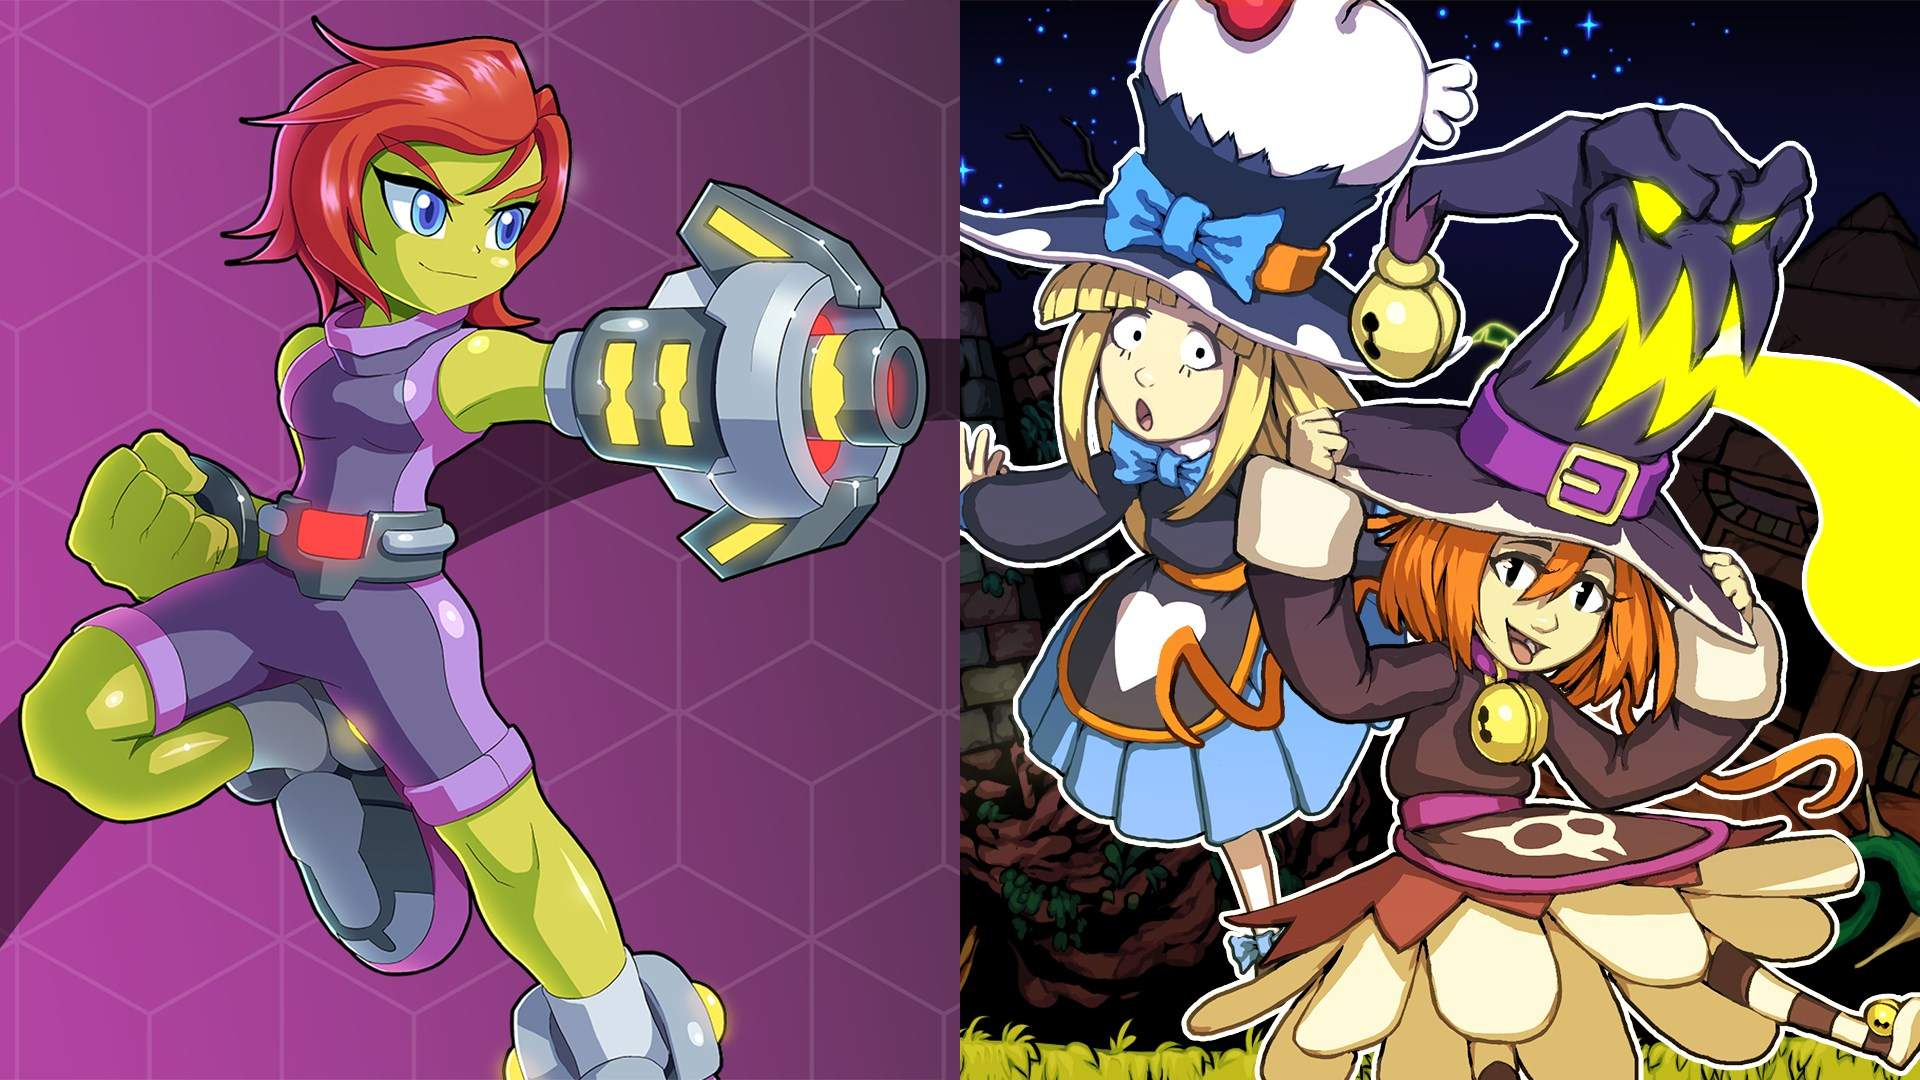 Moon Raider And Sweet Witches Bundle Is Now Available For Xbox One And Xbox Series X|S 1